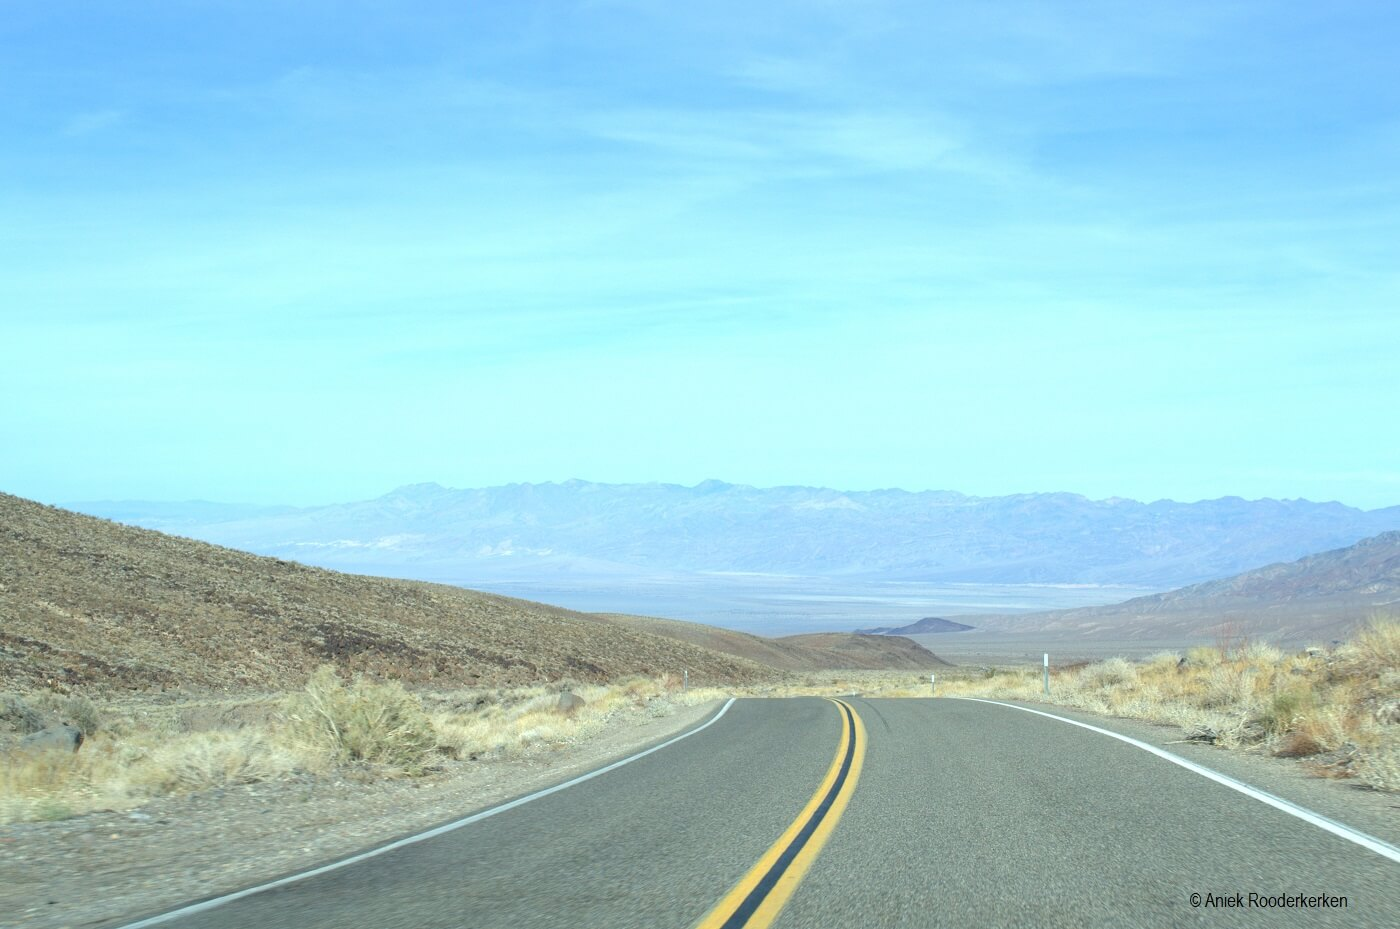 Roadtrip West Coast USA: Death Valley to Las Vegas